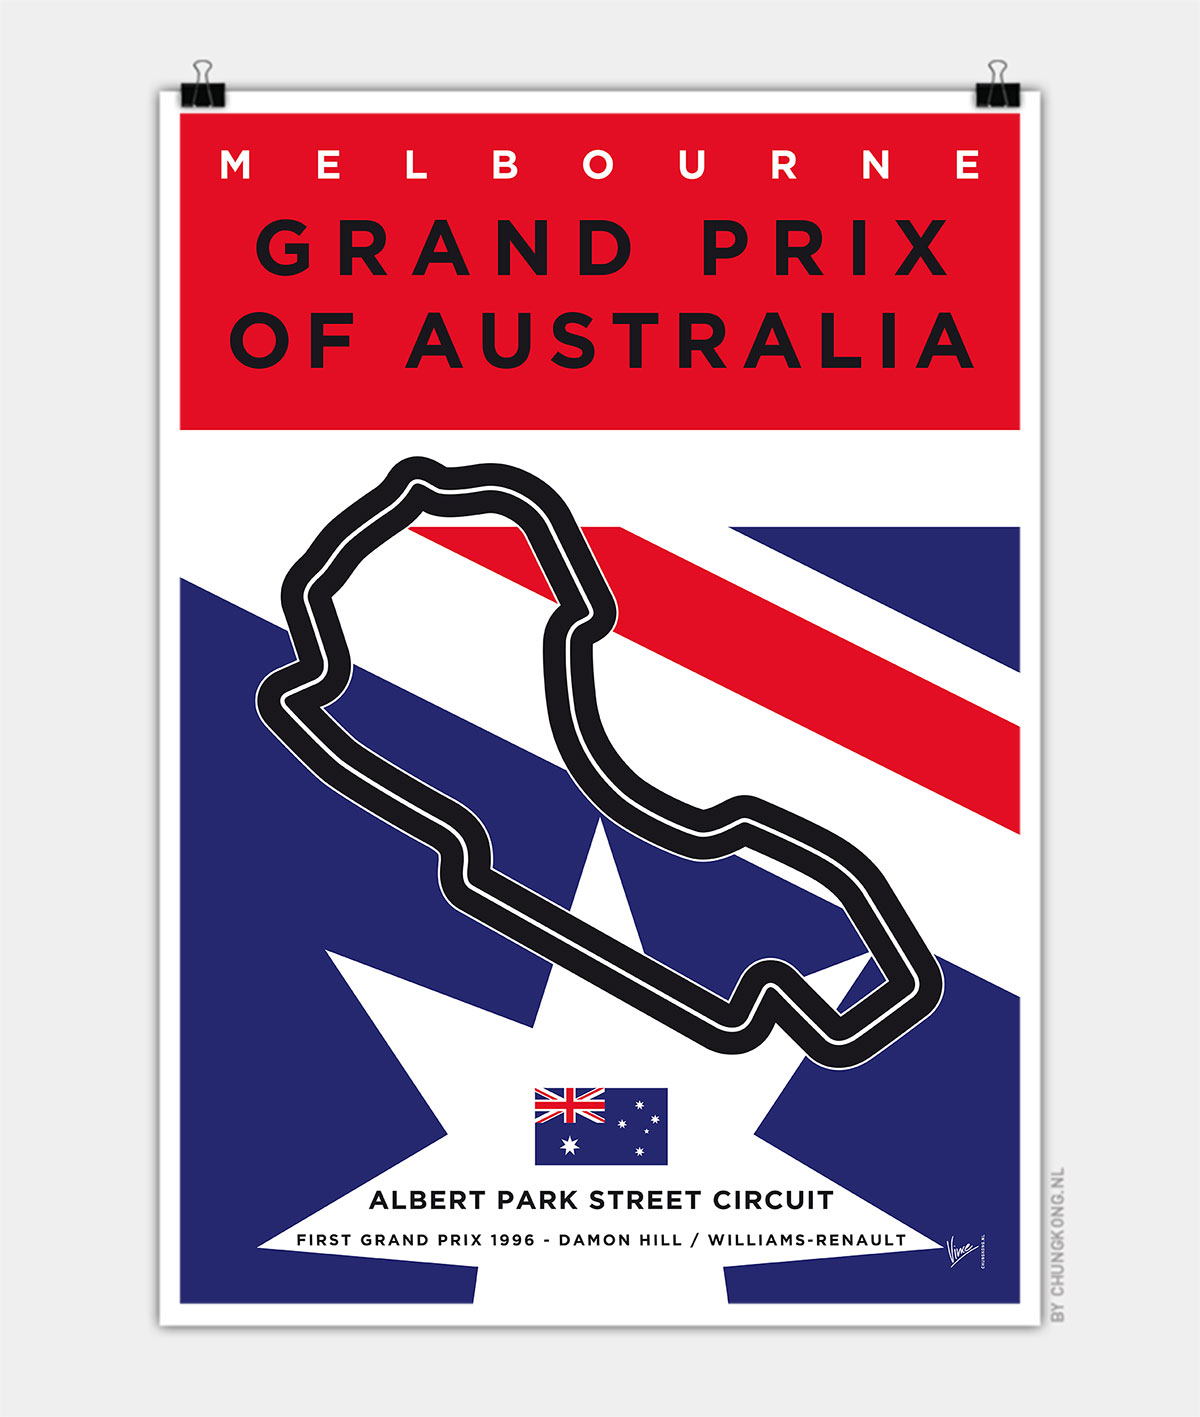 My-F1-MELBOURNE-Race-Track-Minimal-Poster